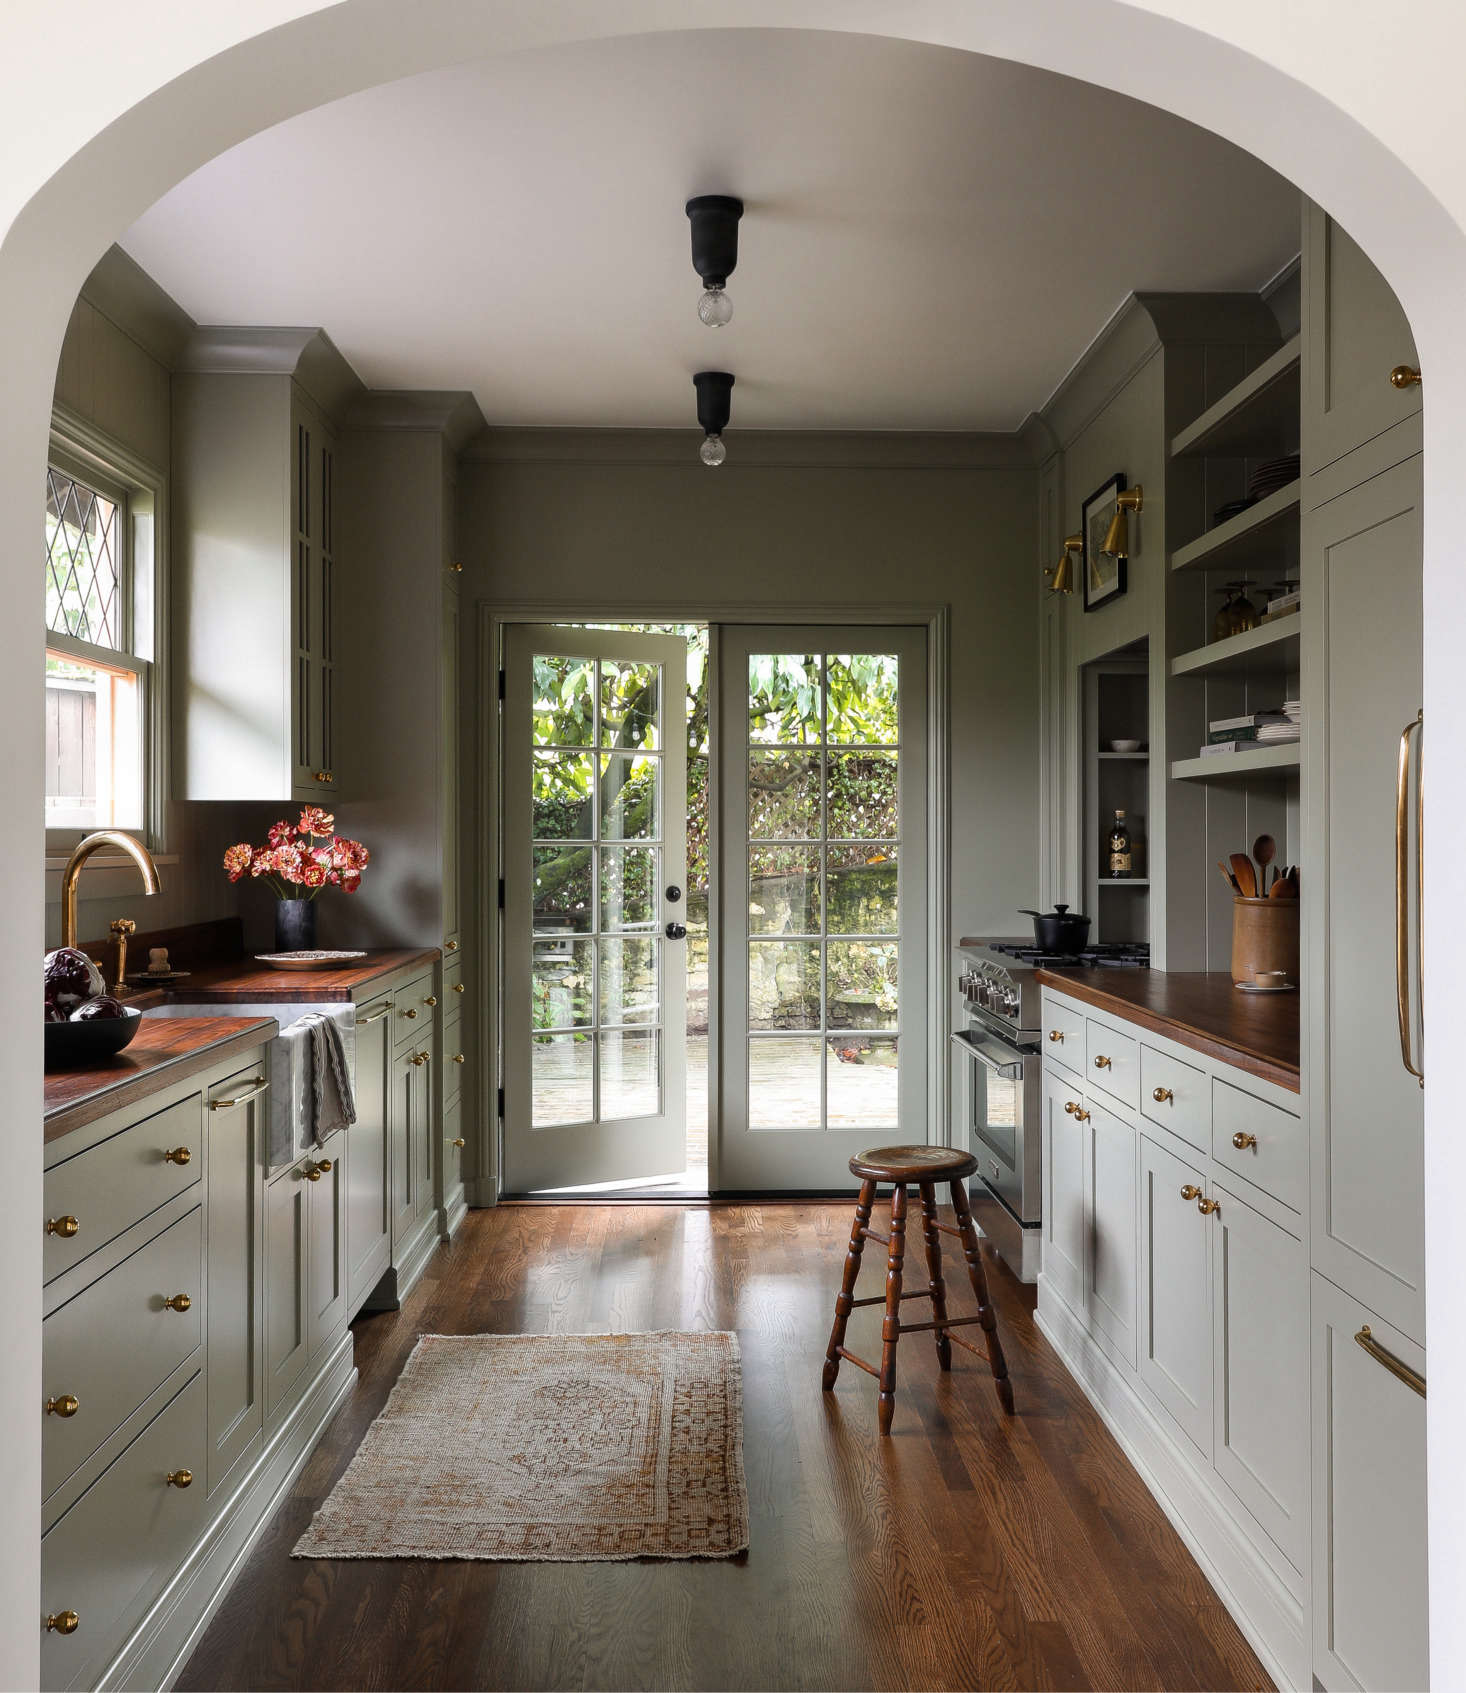 The custom galley kitchen references designs by leading UK design firms deVol and Plain English. The cabinets and walls are painted the same color—Farrow & Ball&#8